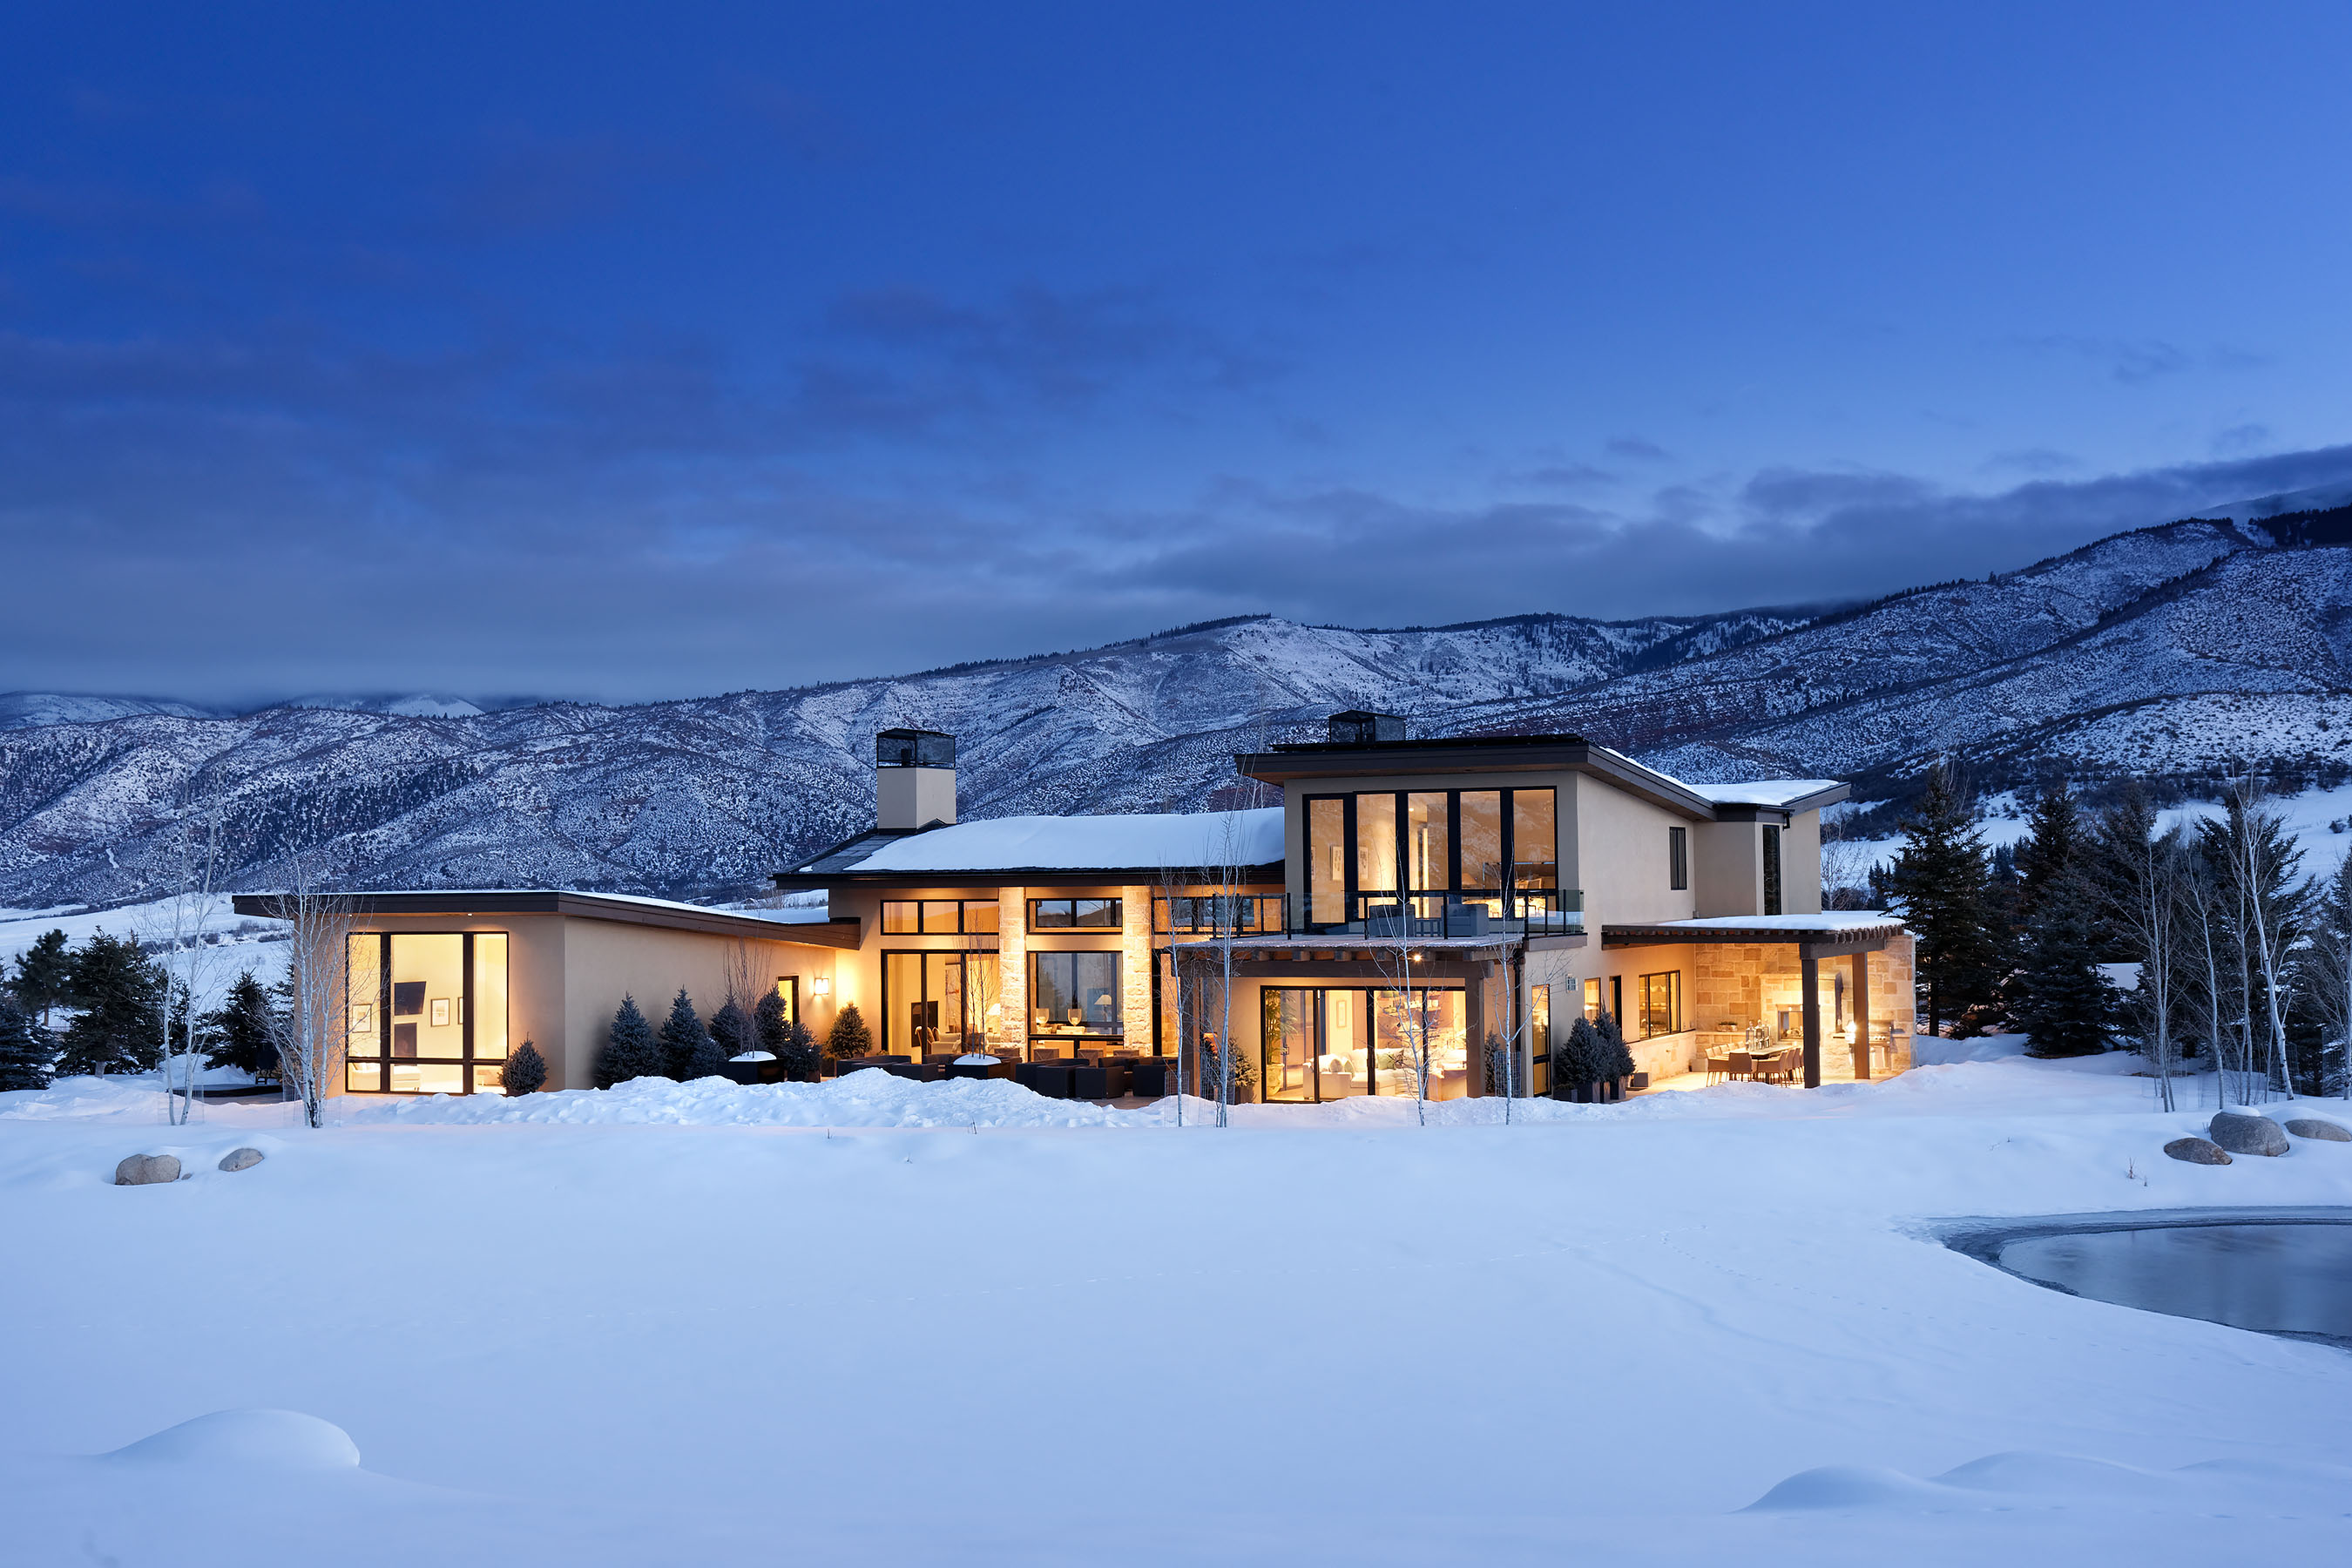 Villa per Vendita alle ore Brand New Exclusive Star View Estate 51 White Star Drive Aspen, Colorado, 81611 Stati Uniti